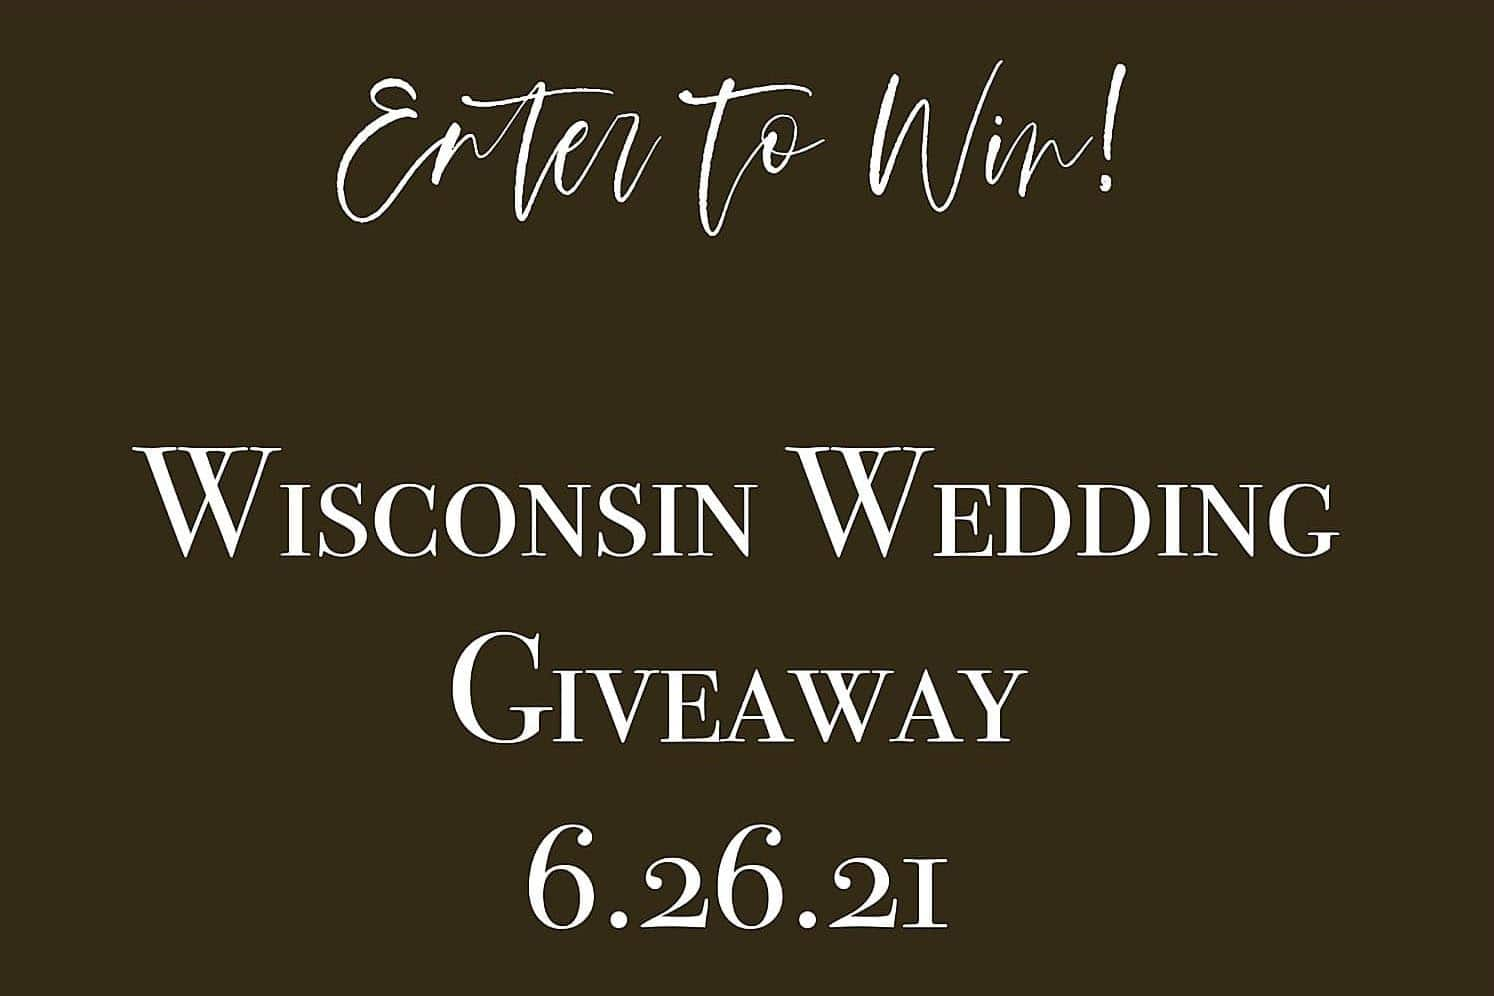 Wedding Giveaway Notice